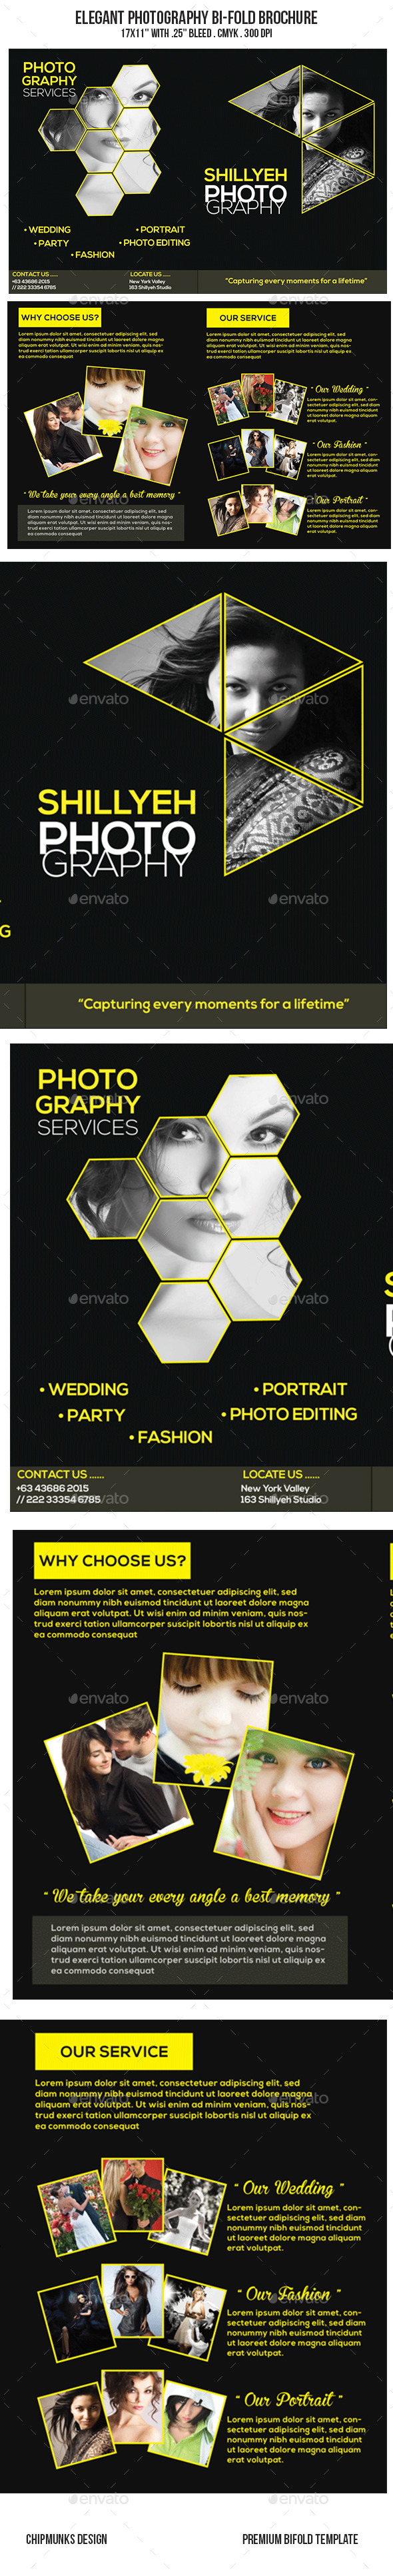 GraphicRiver Elegant Photography Bi-Fold Brochure 10369770